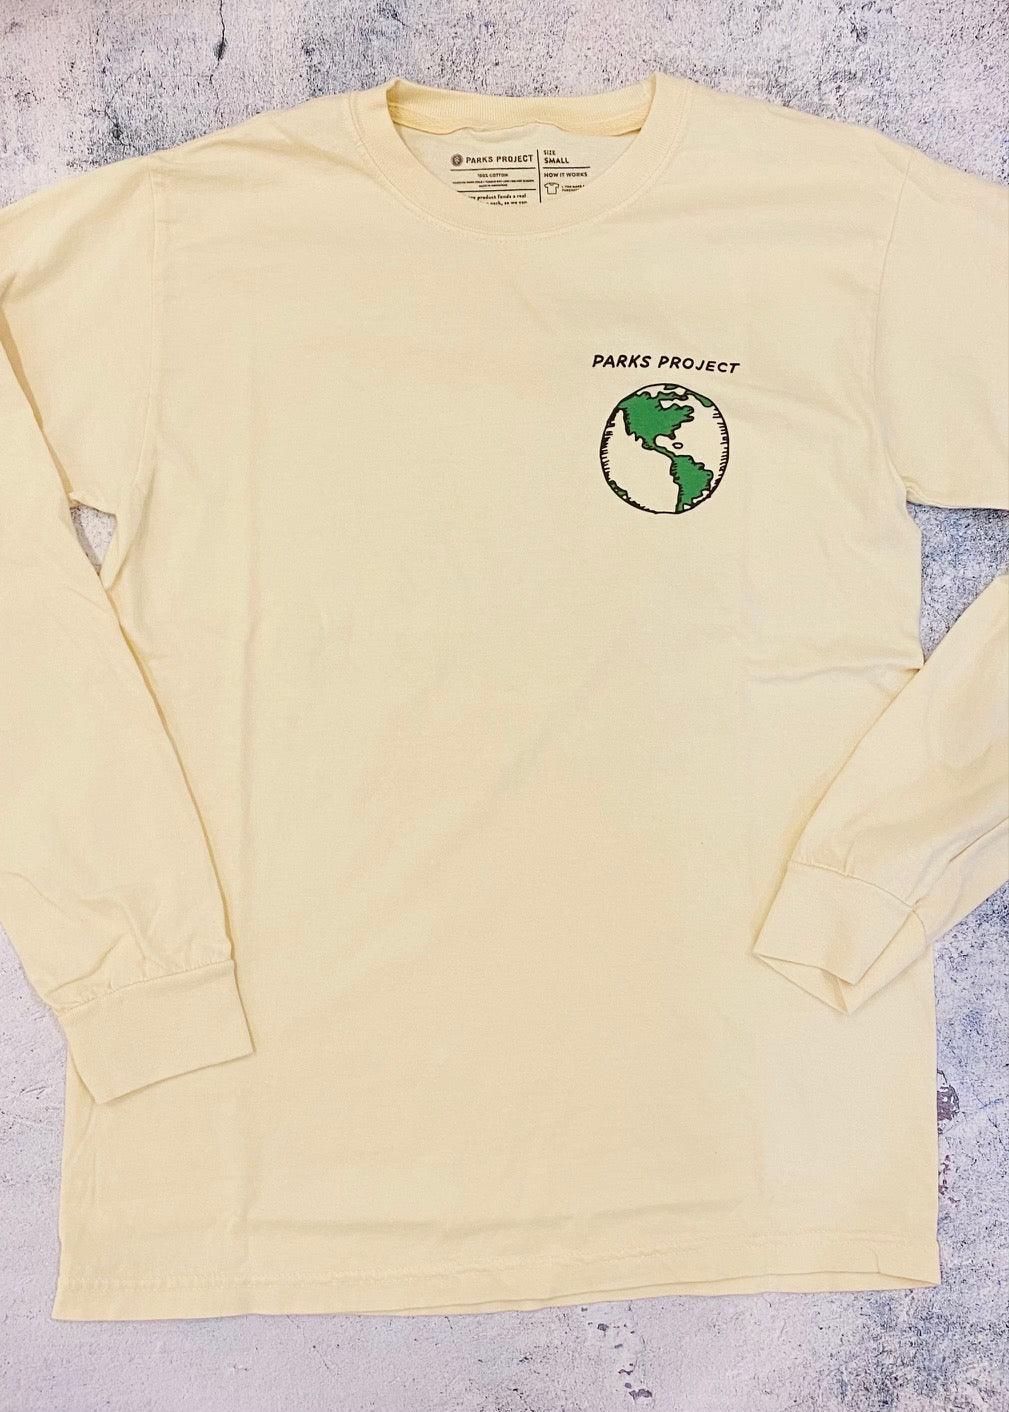 Parks Project Feel The Earth Long Sleeve